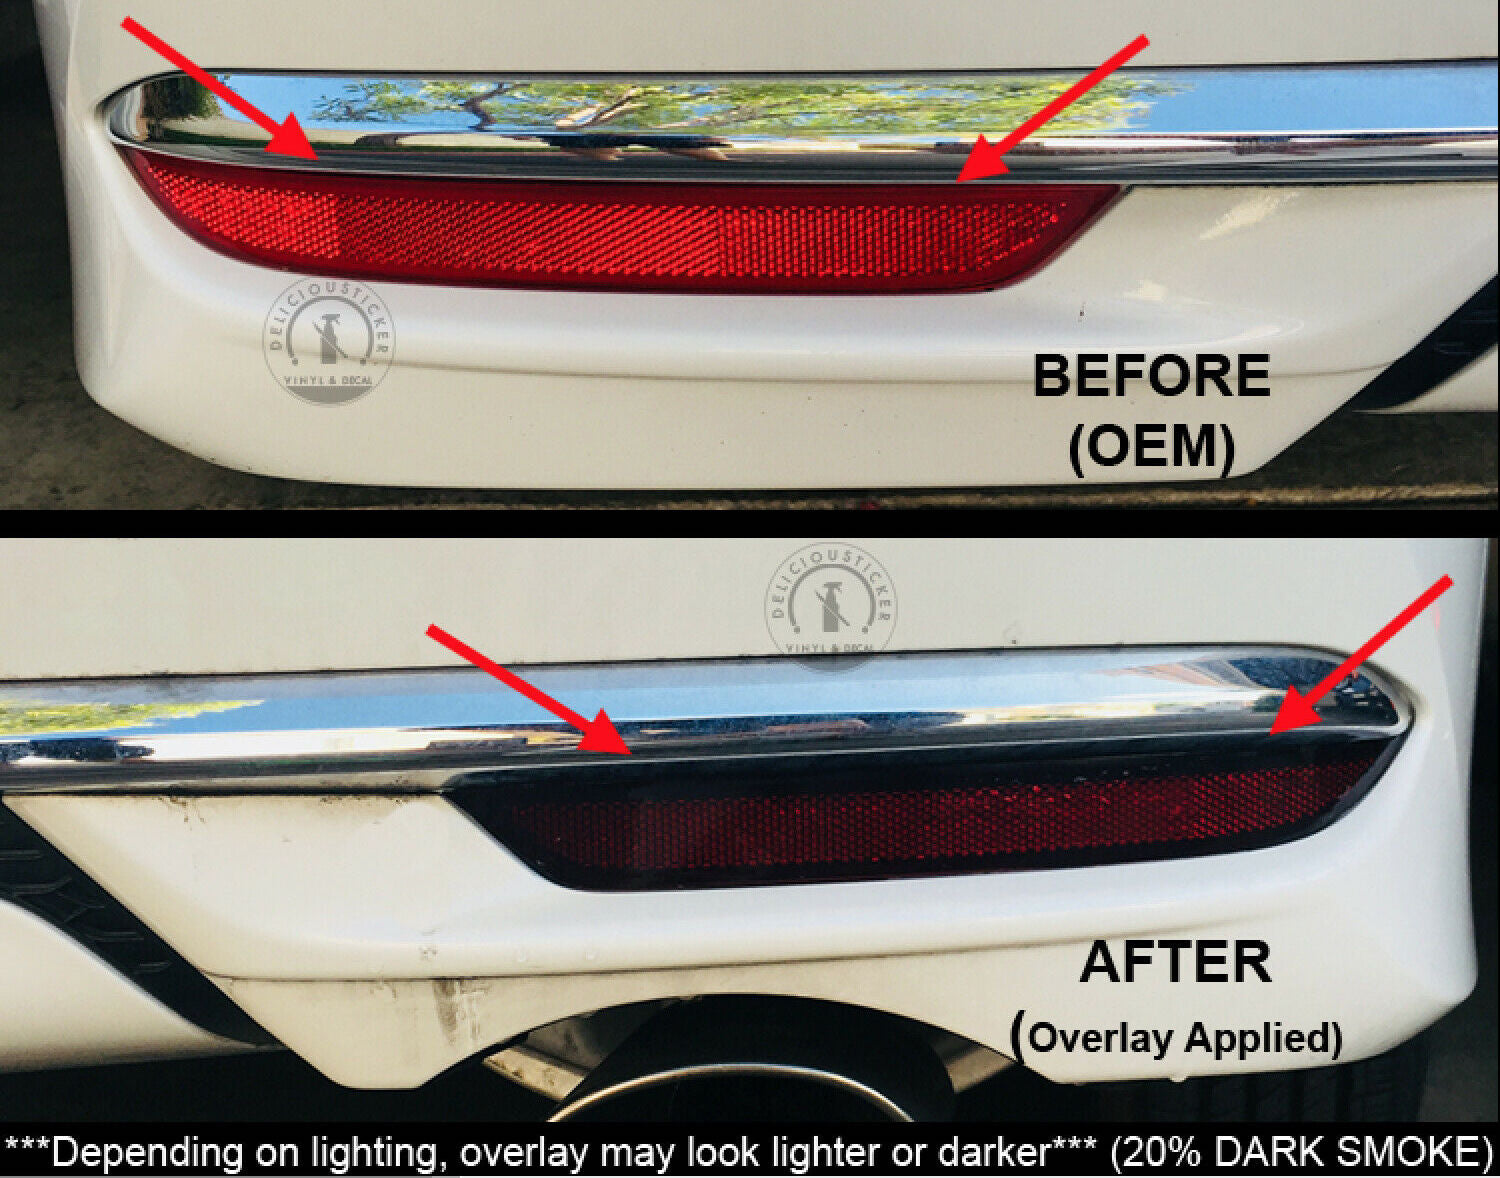 Smoked Rear Bumper Reflectors Insert Overlays (Fits For: 2016-2017 Honda Accord)